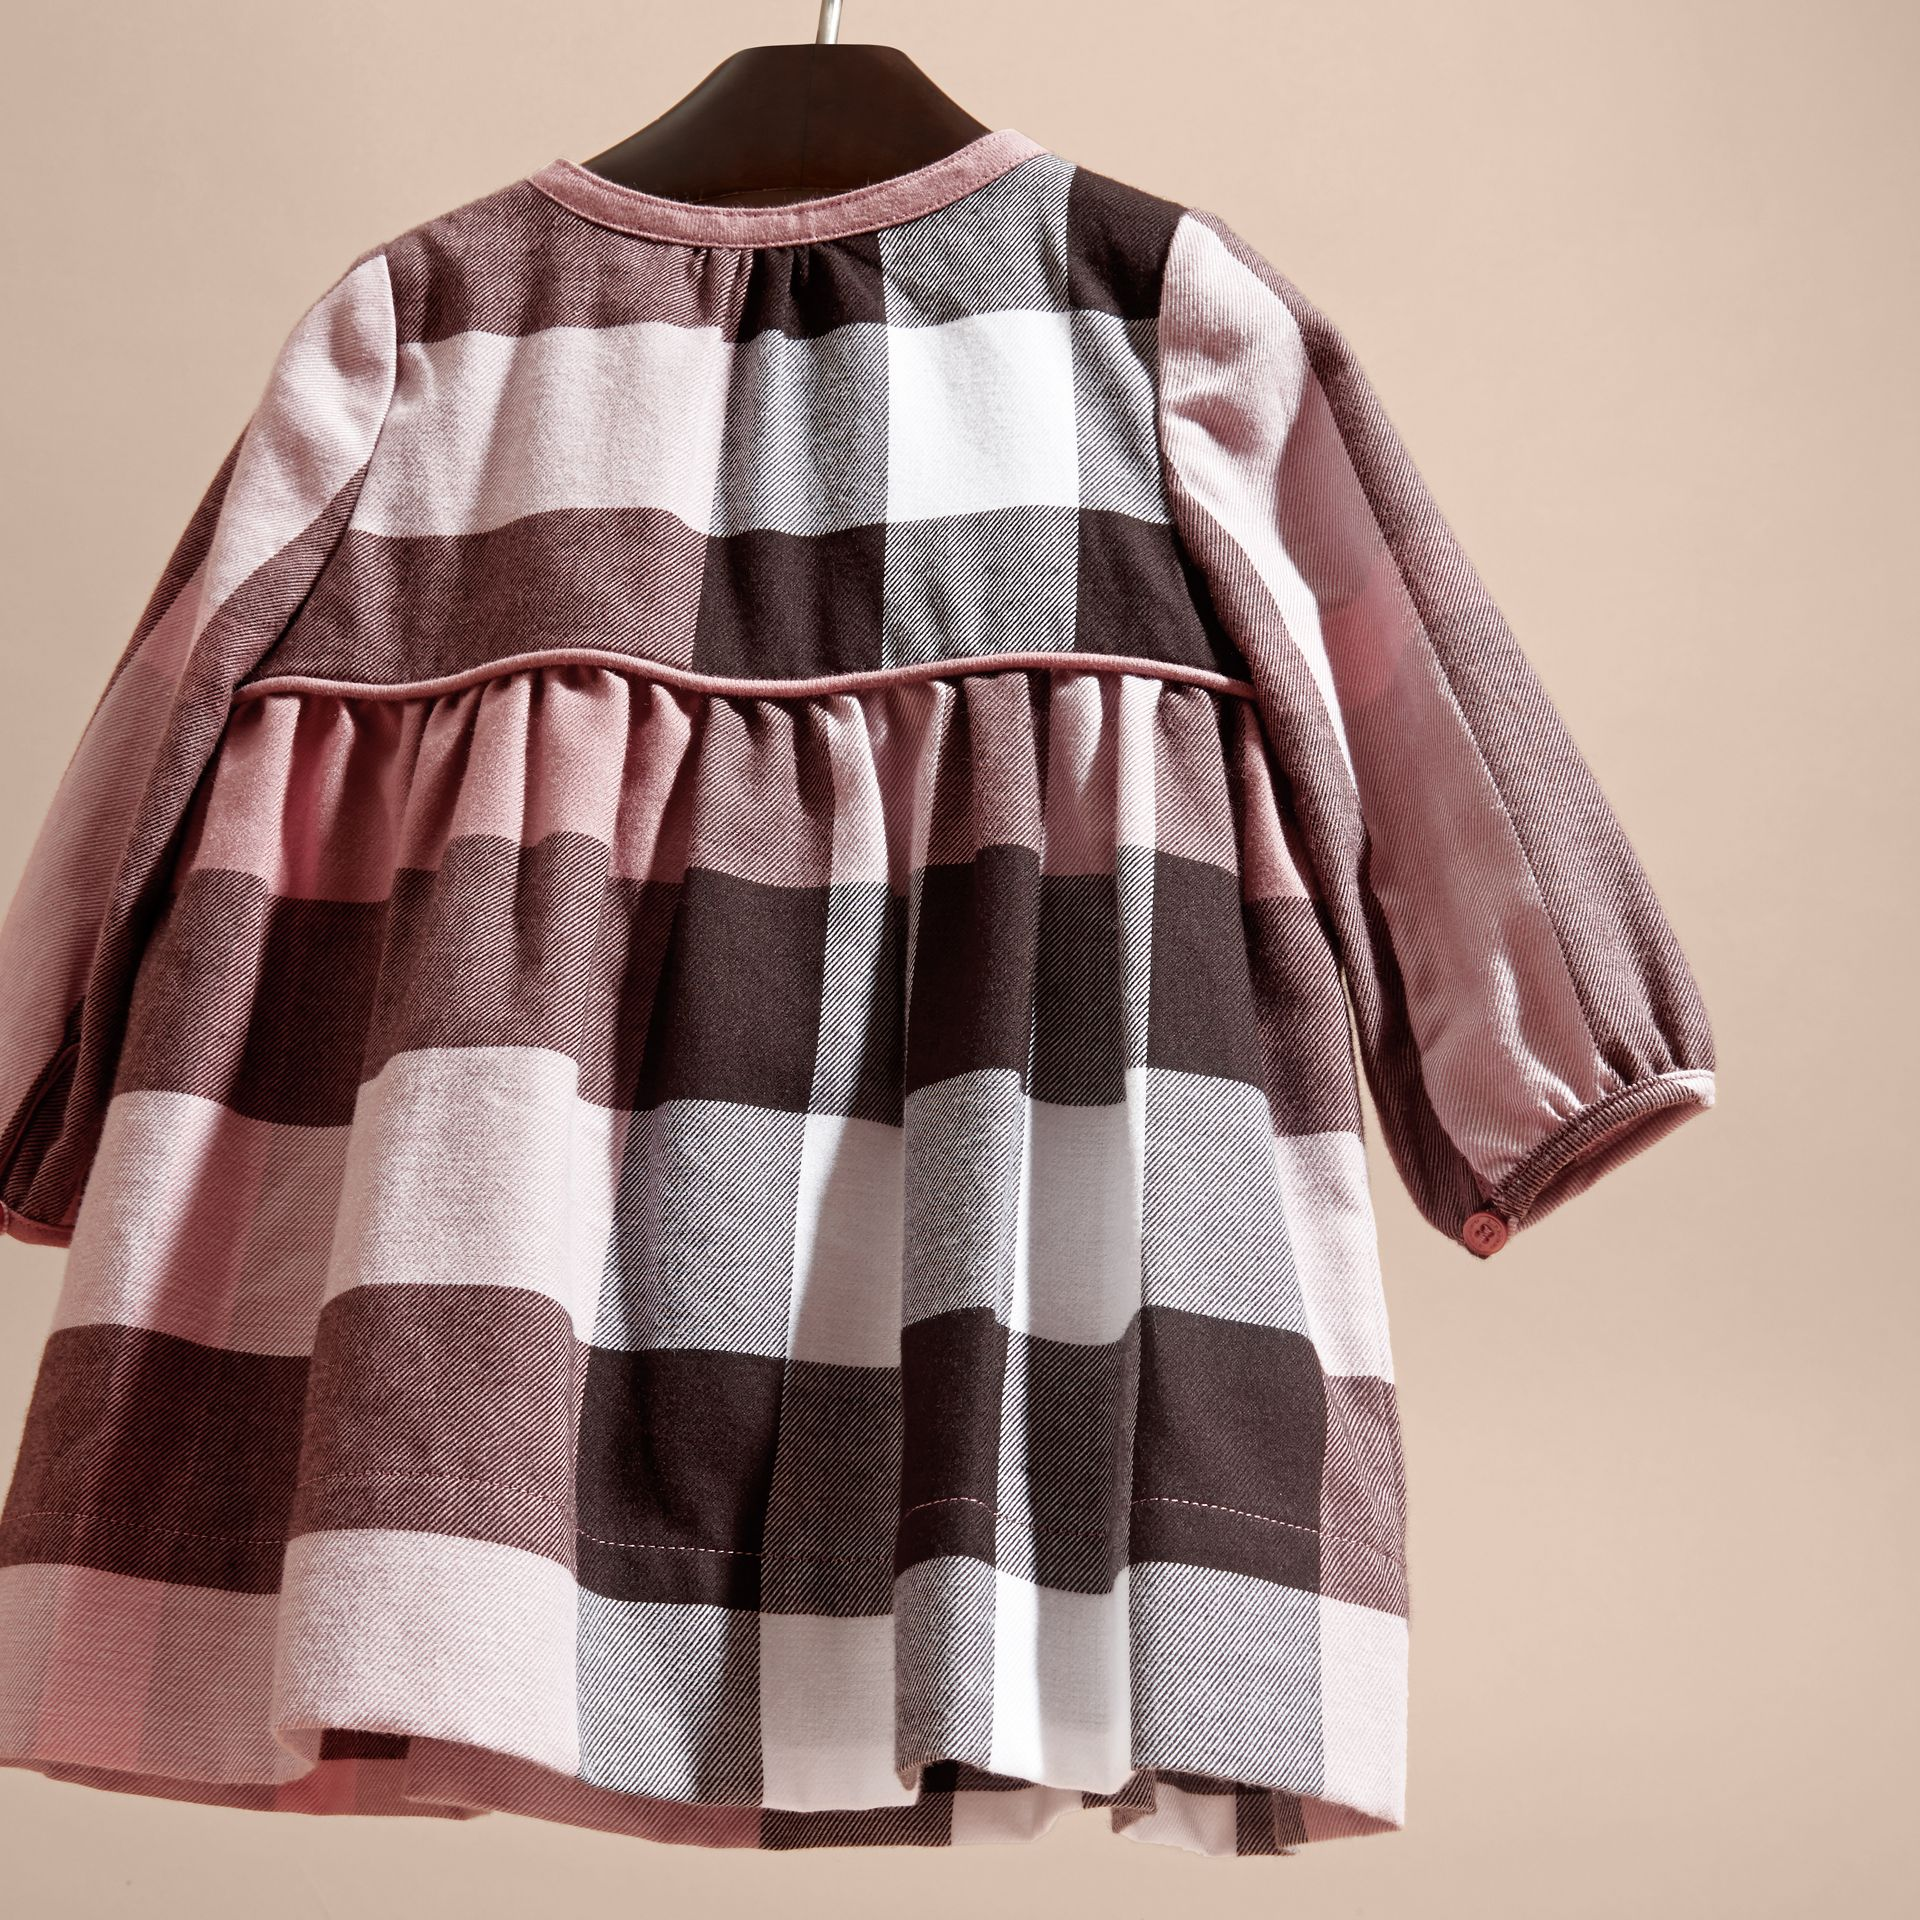 Antique rose Check Cotton Flannel Dress with Bow Detail Antique Rose - gallery image 4